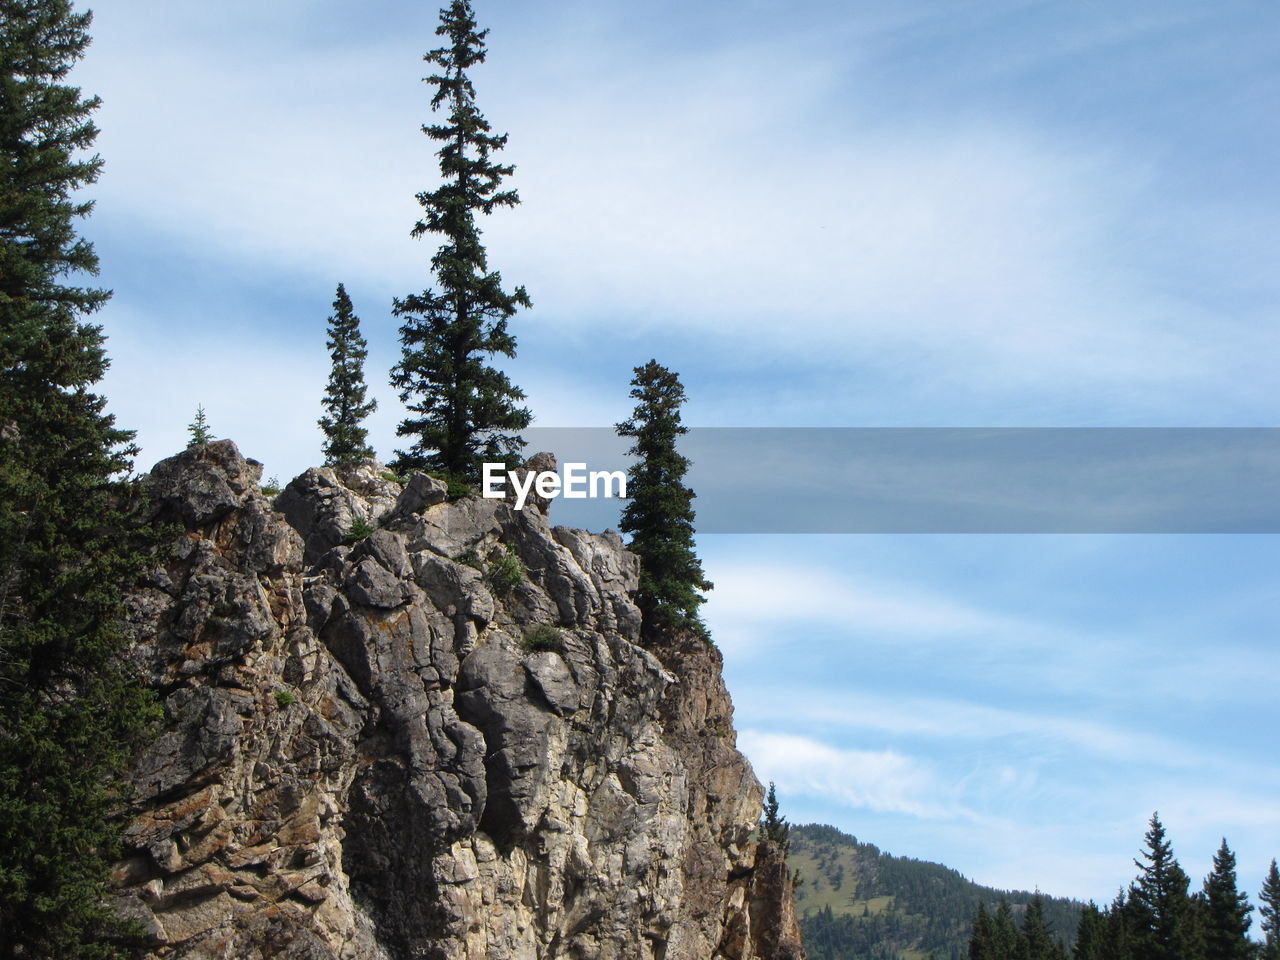 sky, beauty in nature, plant, tree, cloud - sky, rock, tranquility, mountain, tranquil scene, low angle view, nature, scenics - nature, rock - object, day, non-urban scene, solid, no people, growth, rock formation, environment, outdoors, formation, coniferous tree, pine tree, mountain peak